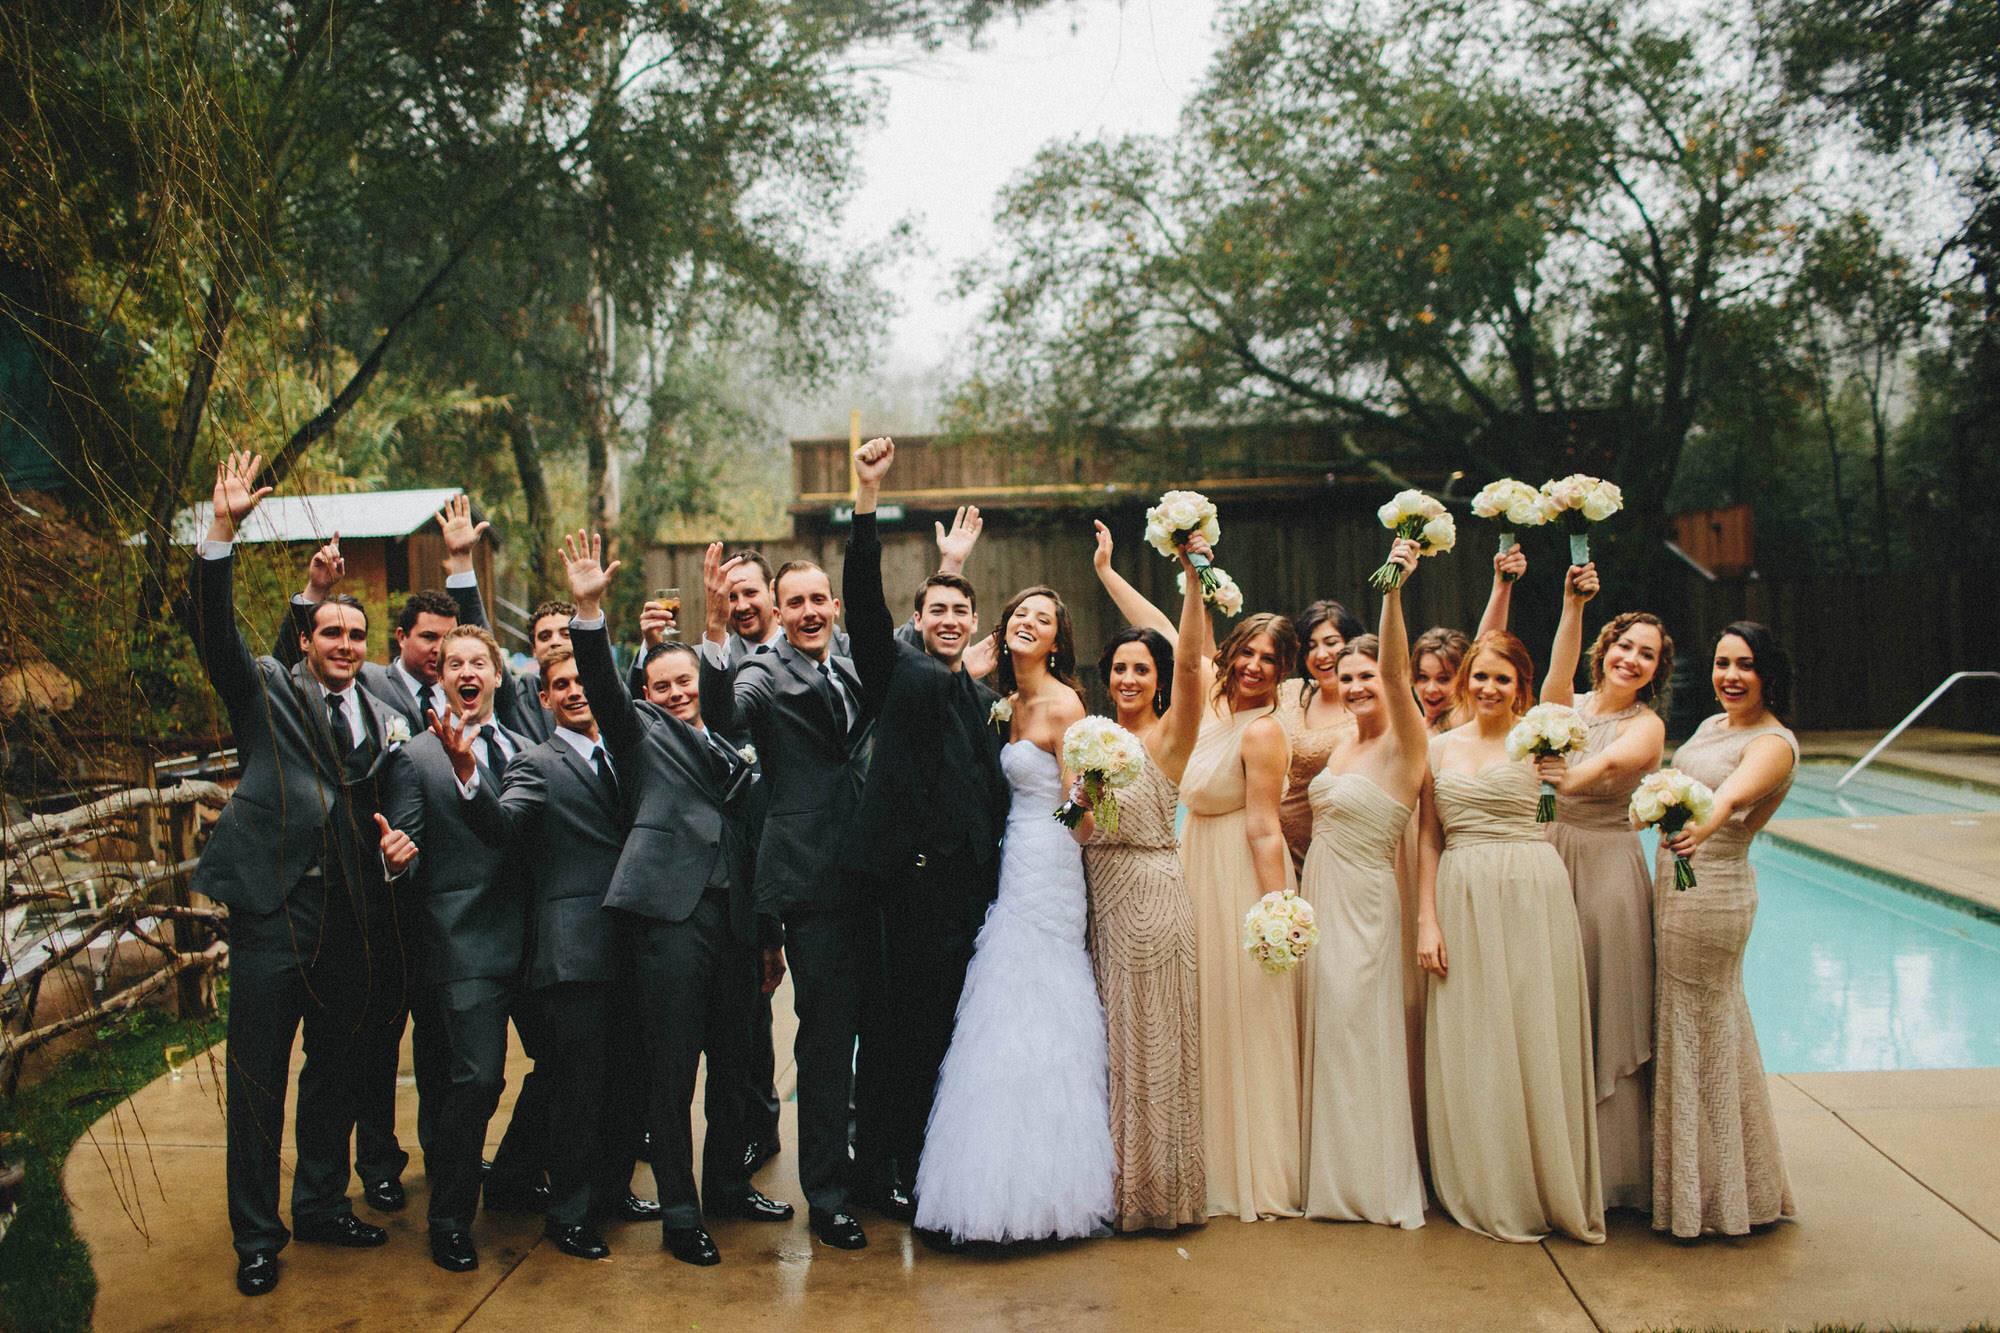 Calamigos-Ranch-Wedding-100.jpg